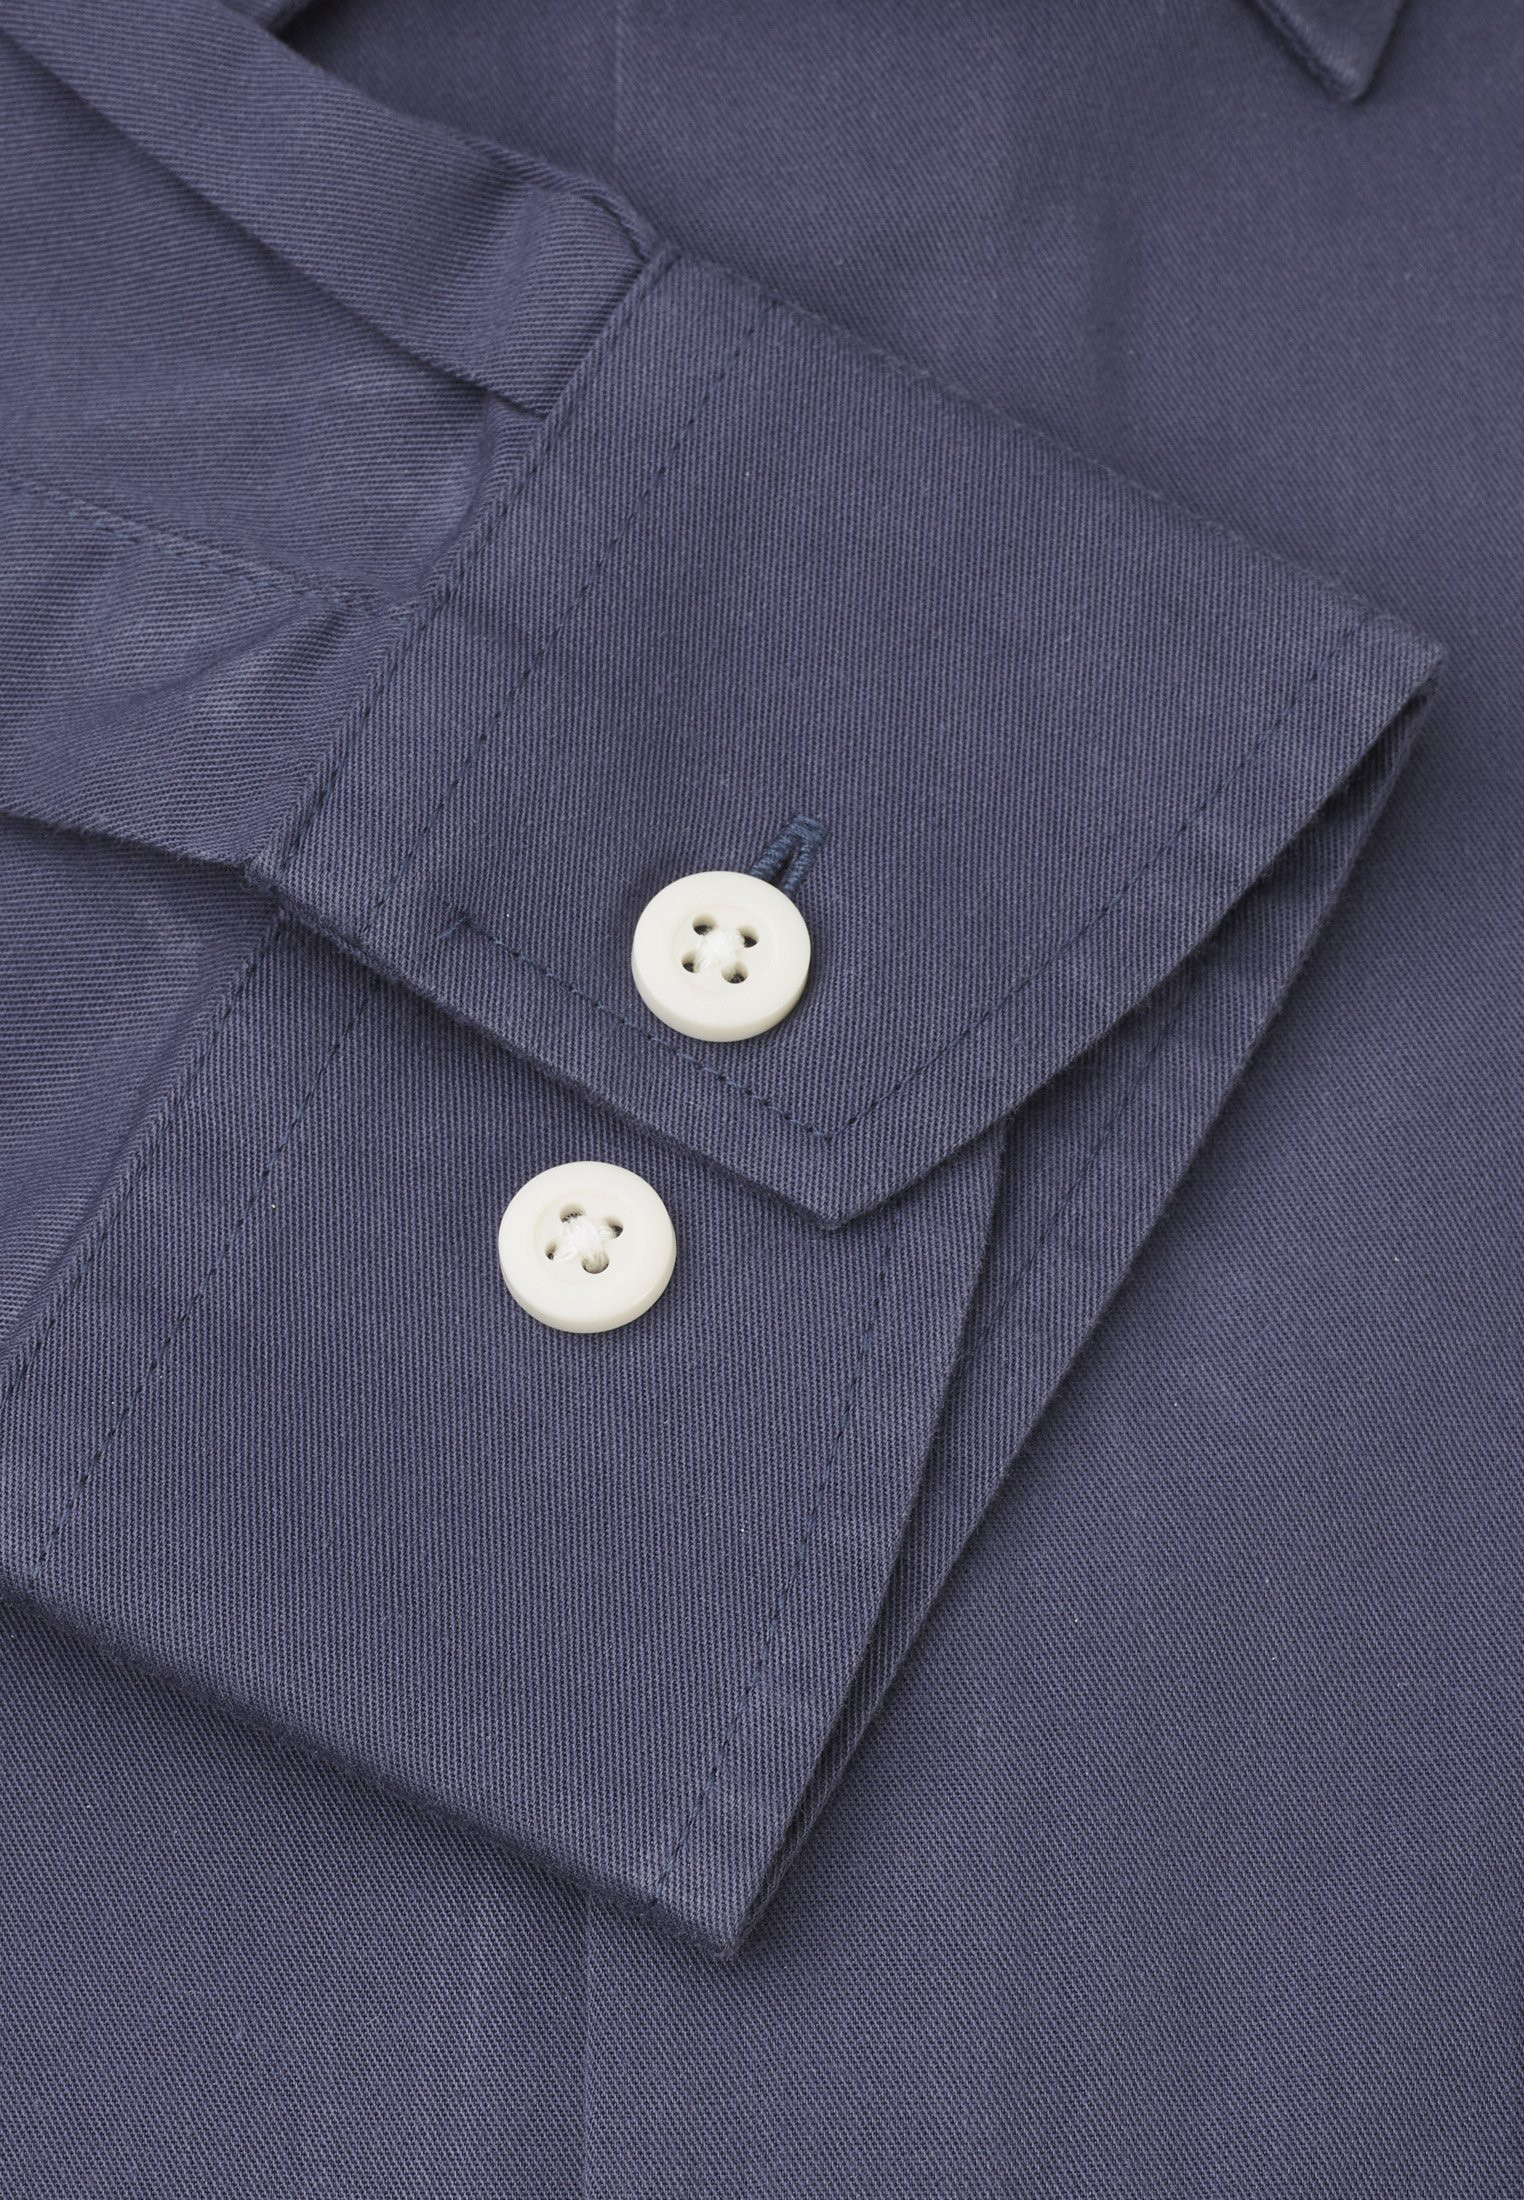 Classic and Tailored Fit Navy Garment Washed Twill Shirt